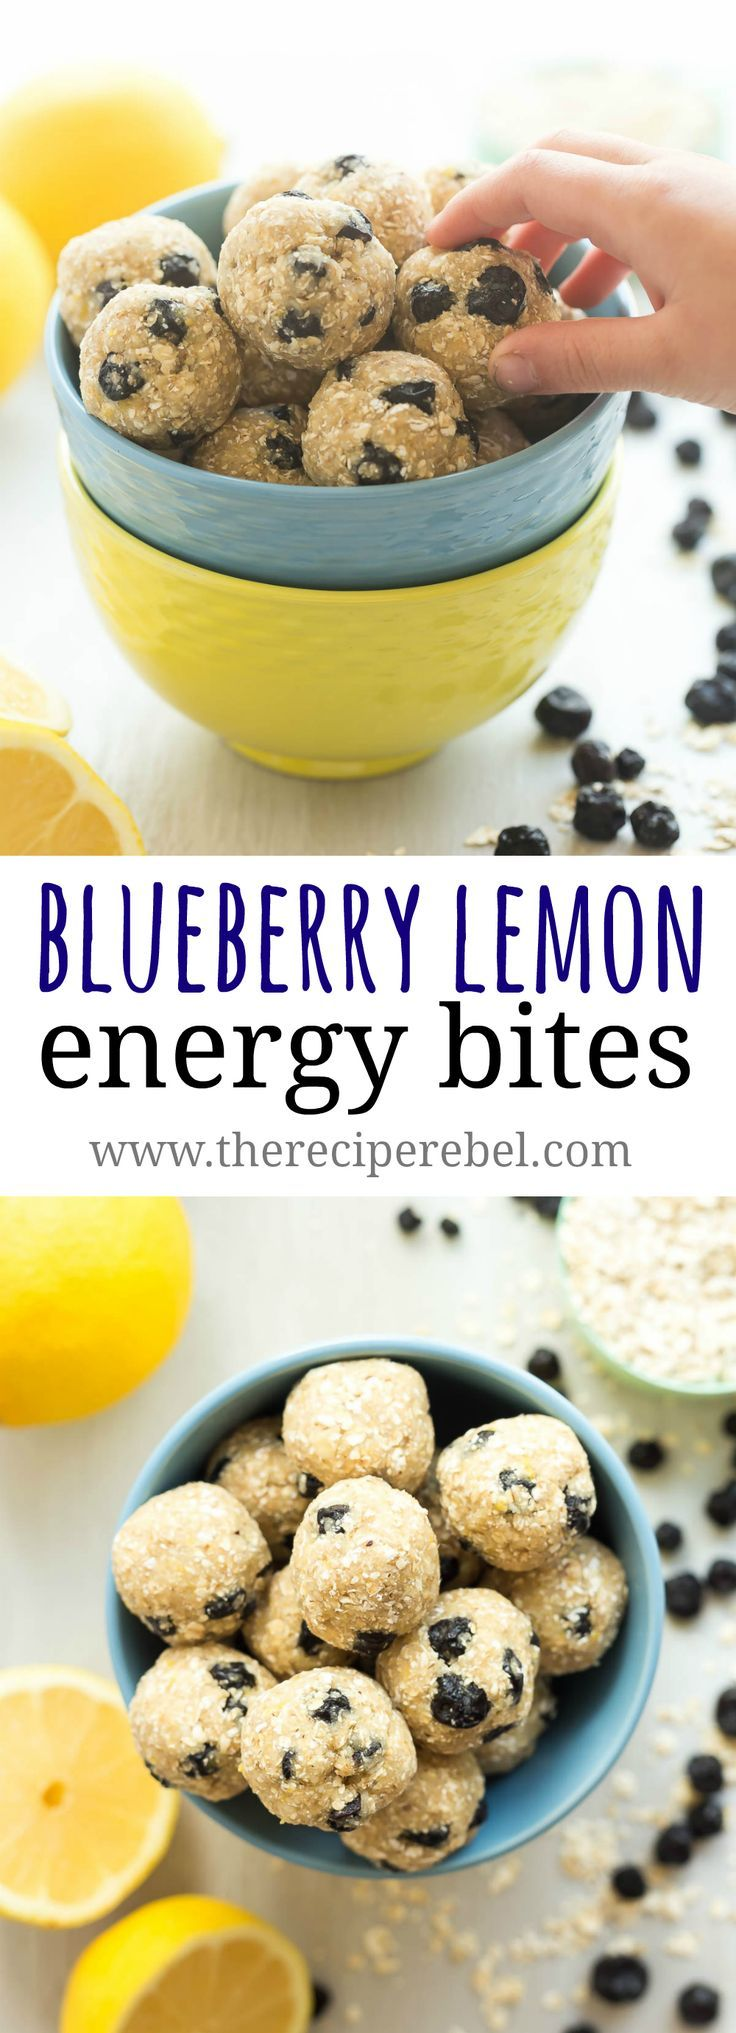 Lemon Blueberry Energy Bites - The Recipe Rebel